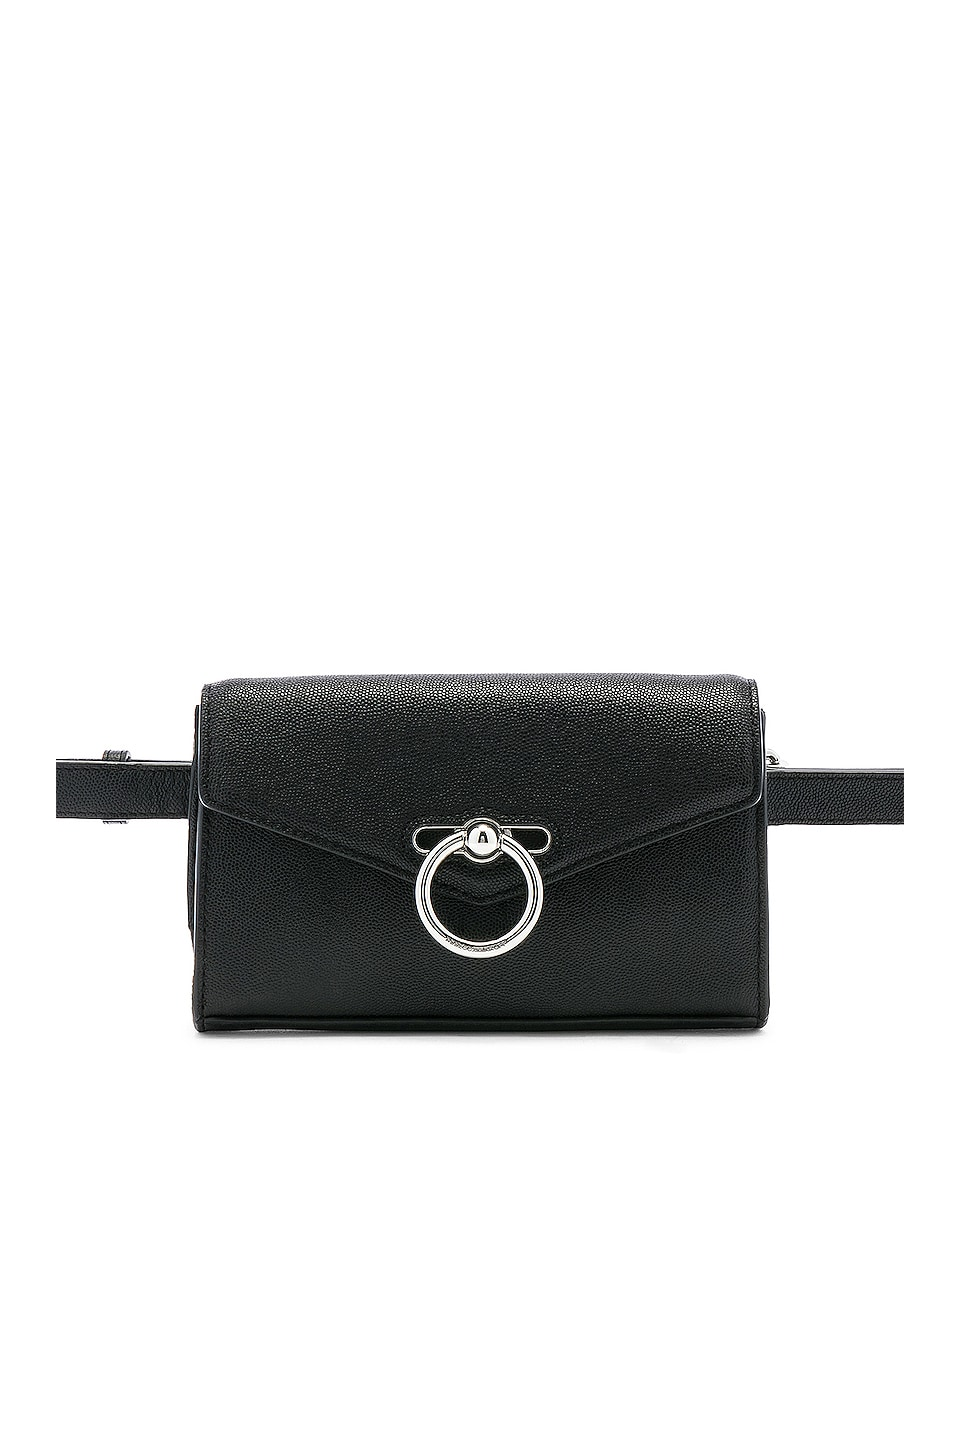 Rebecca Minkoff Jean Belt Bag in Black